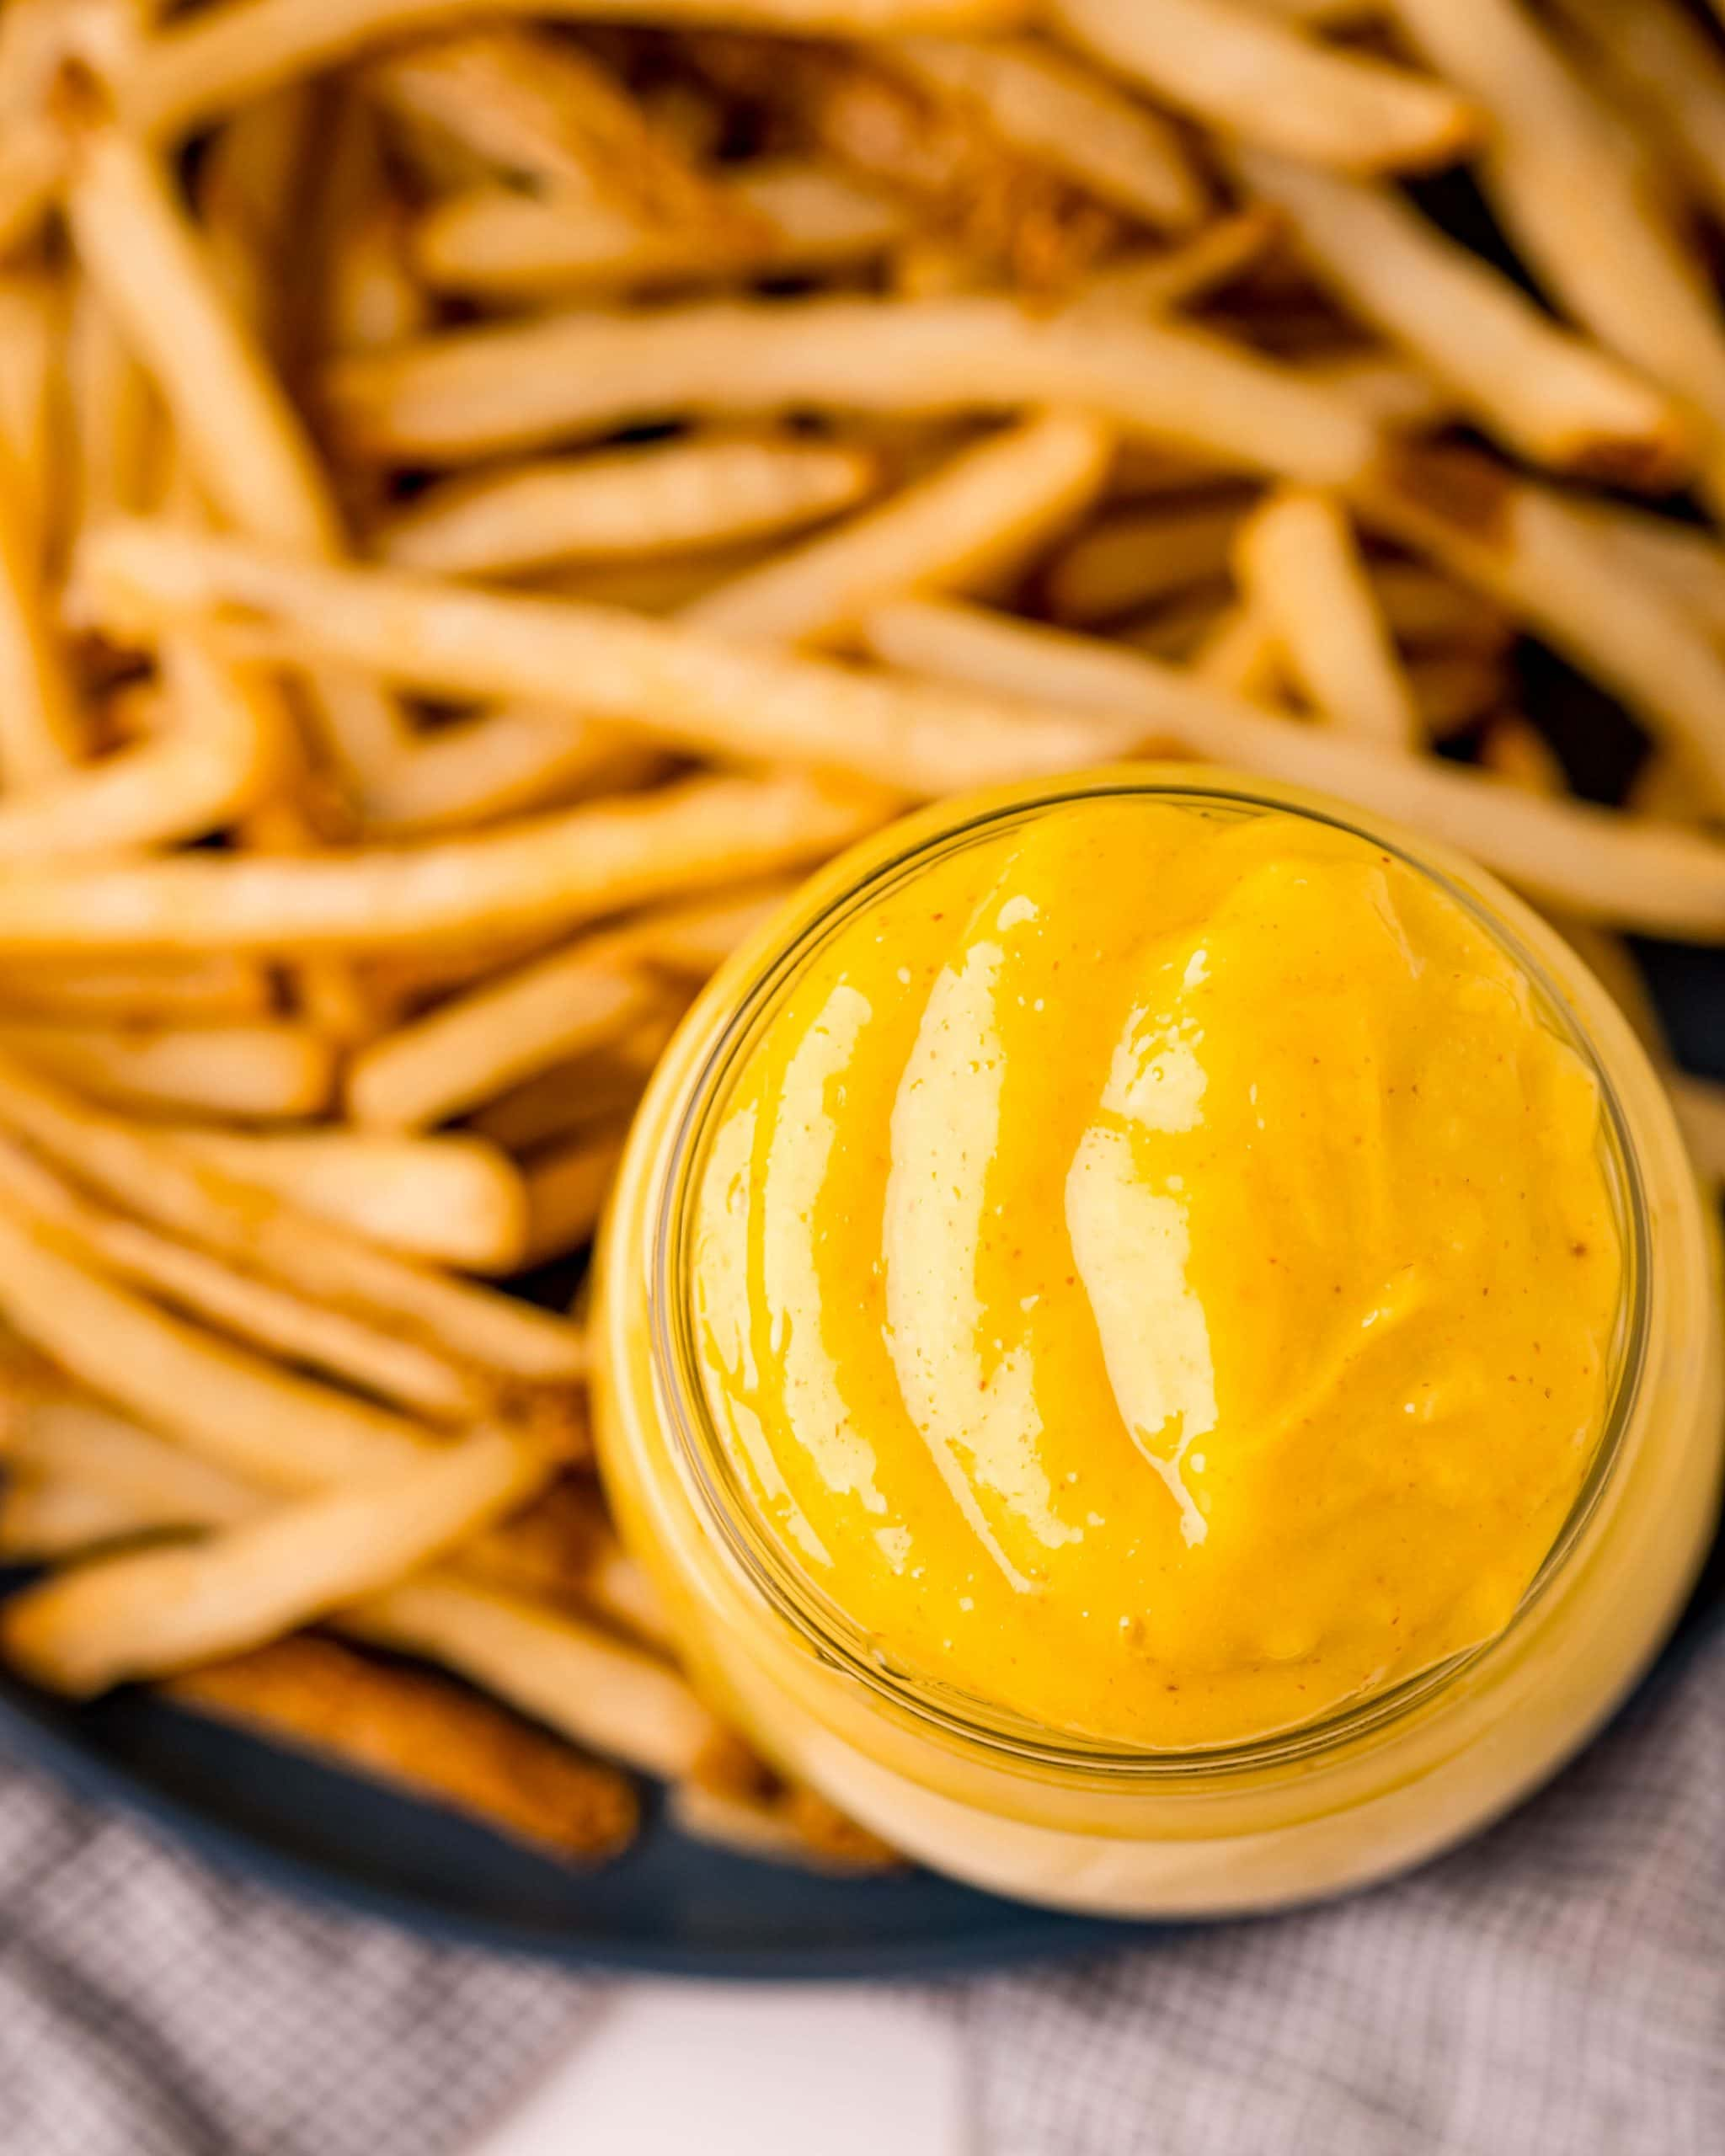 An overhead shot of a jar full of a yellow, creamy mixture that is a homemade aioli, that is also on a plate with a bunch of french fries.